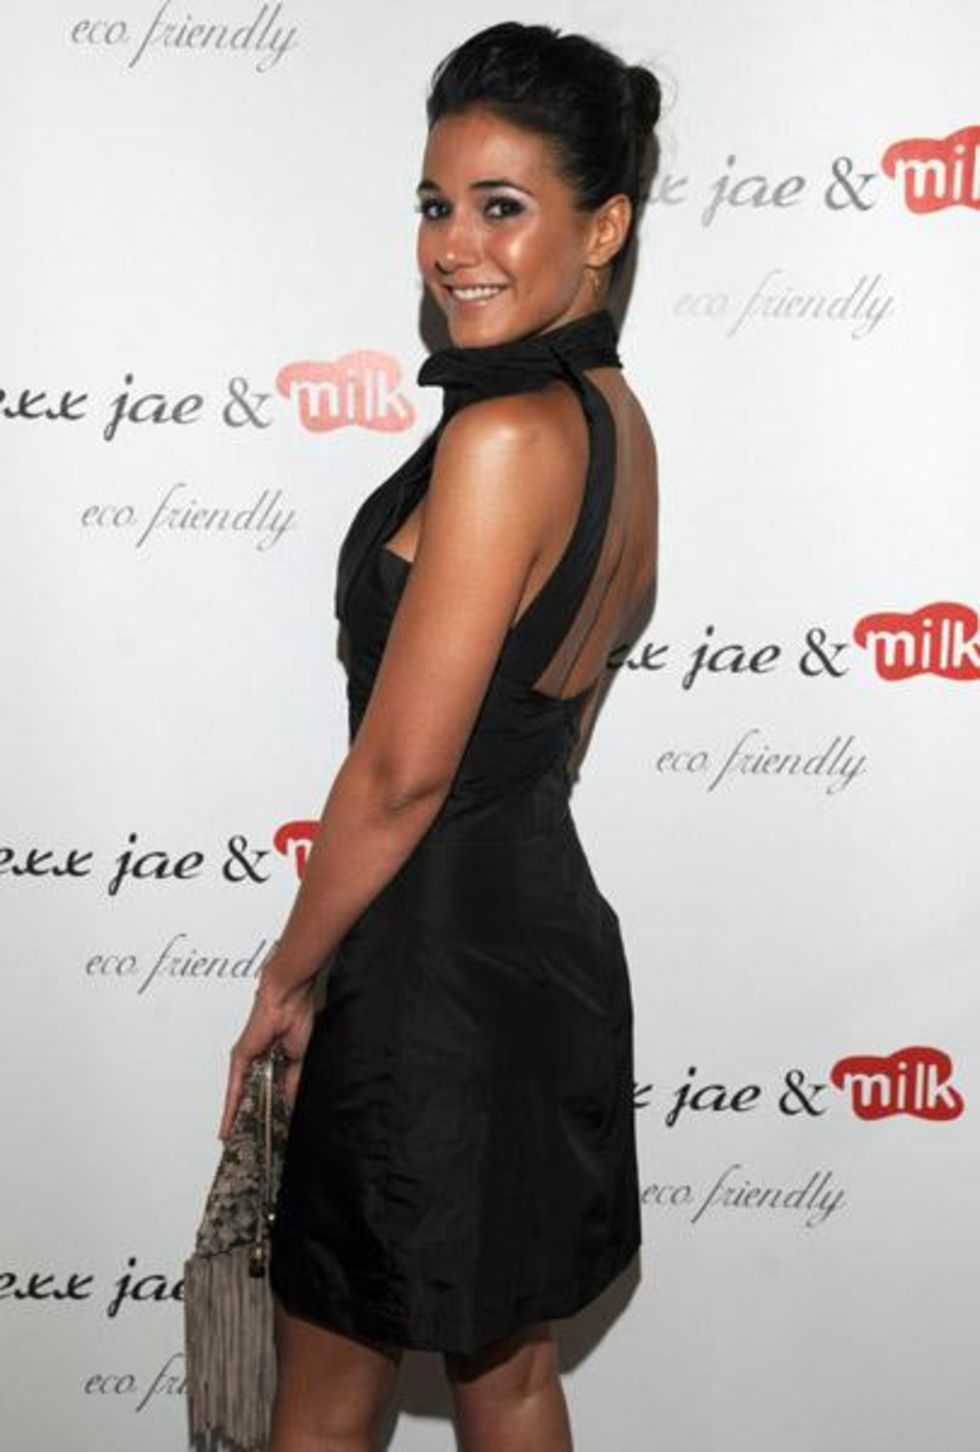 Emmanuelle Chriqui 2010 : emmanuelle-chriqui-cleavage-at-alexx-jae-milk-fw10-collection-launch-party-2010-23